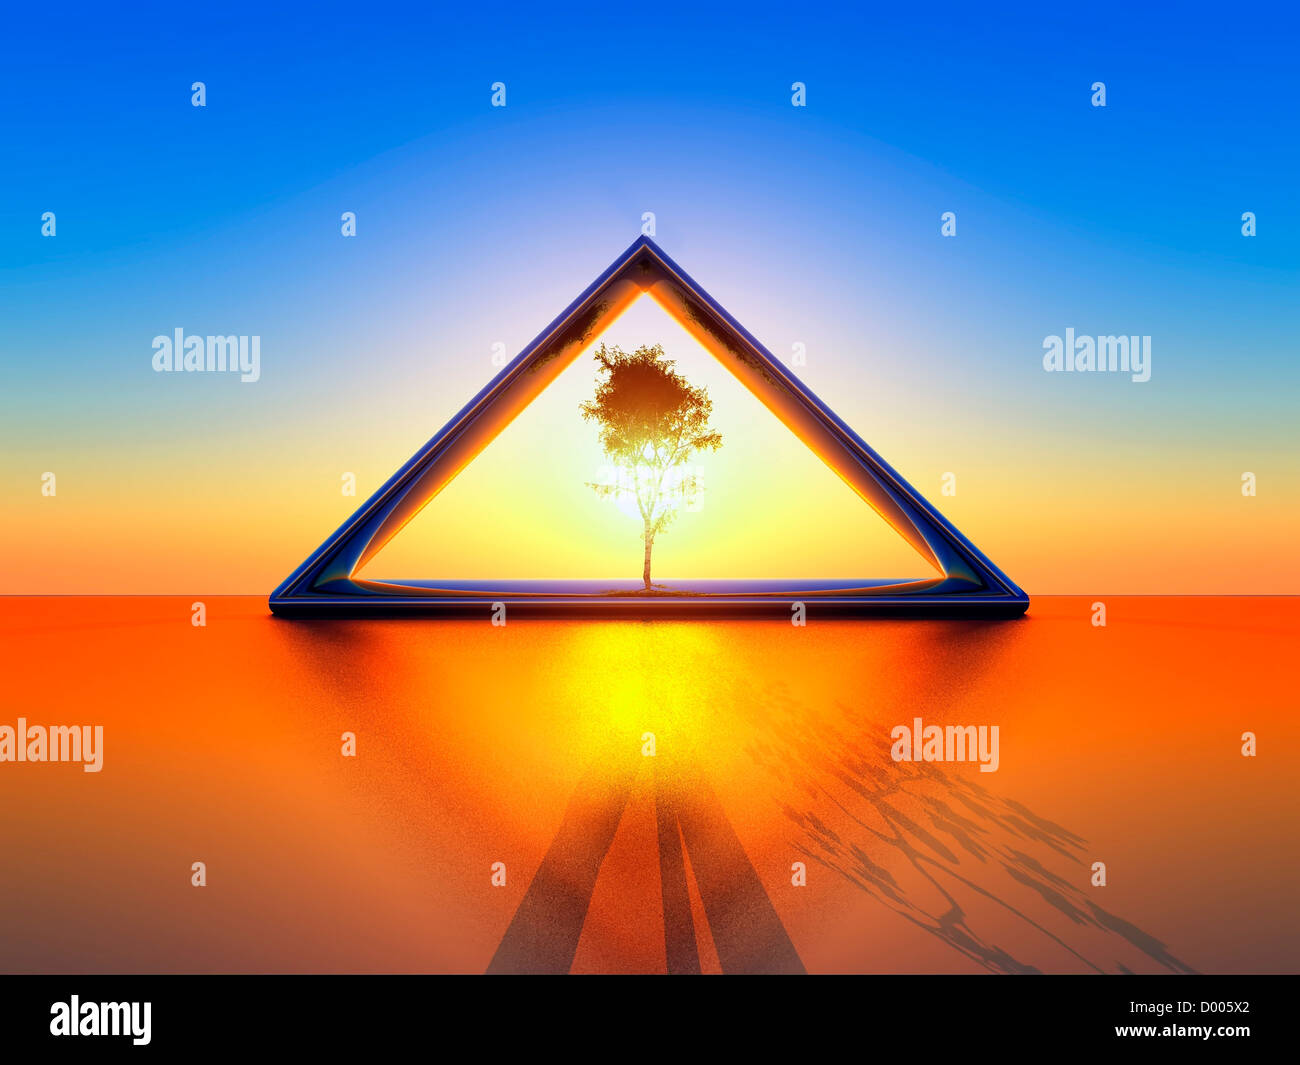 conceptual illustration of ecology - Stock Image